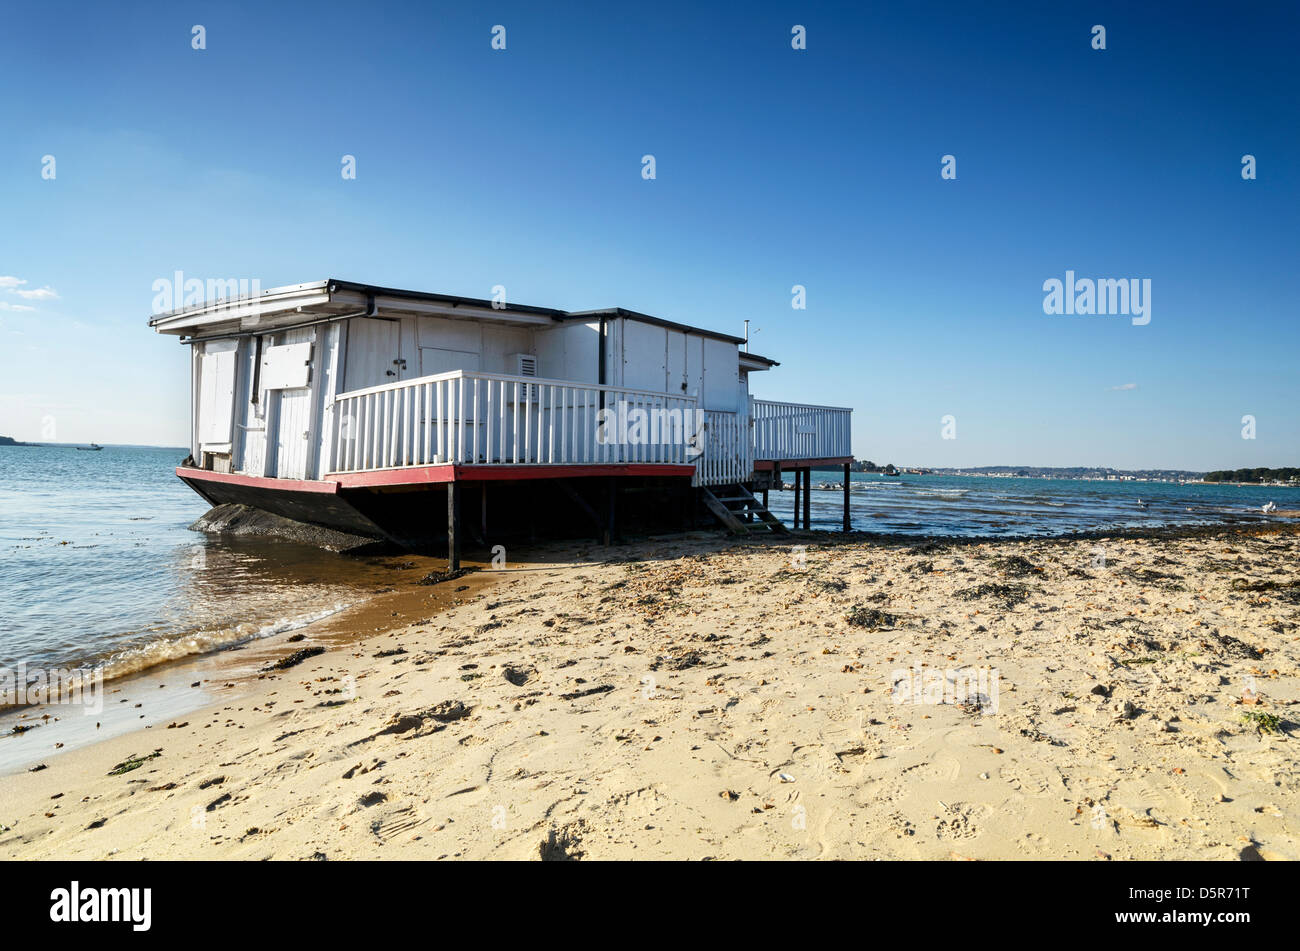 Old house boat on the beach at Studland in Dorset - Stock Image